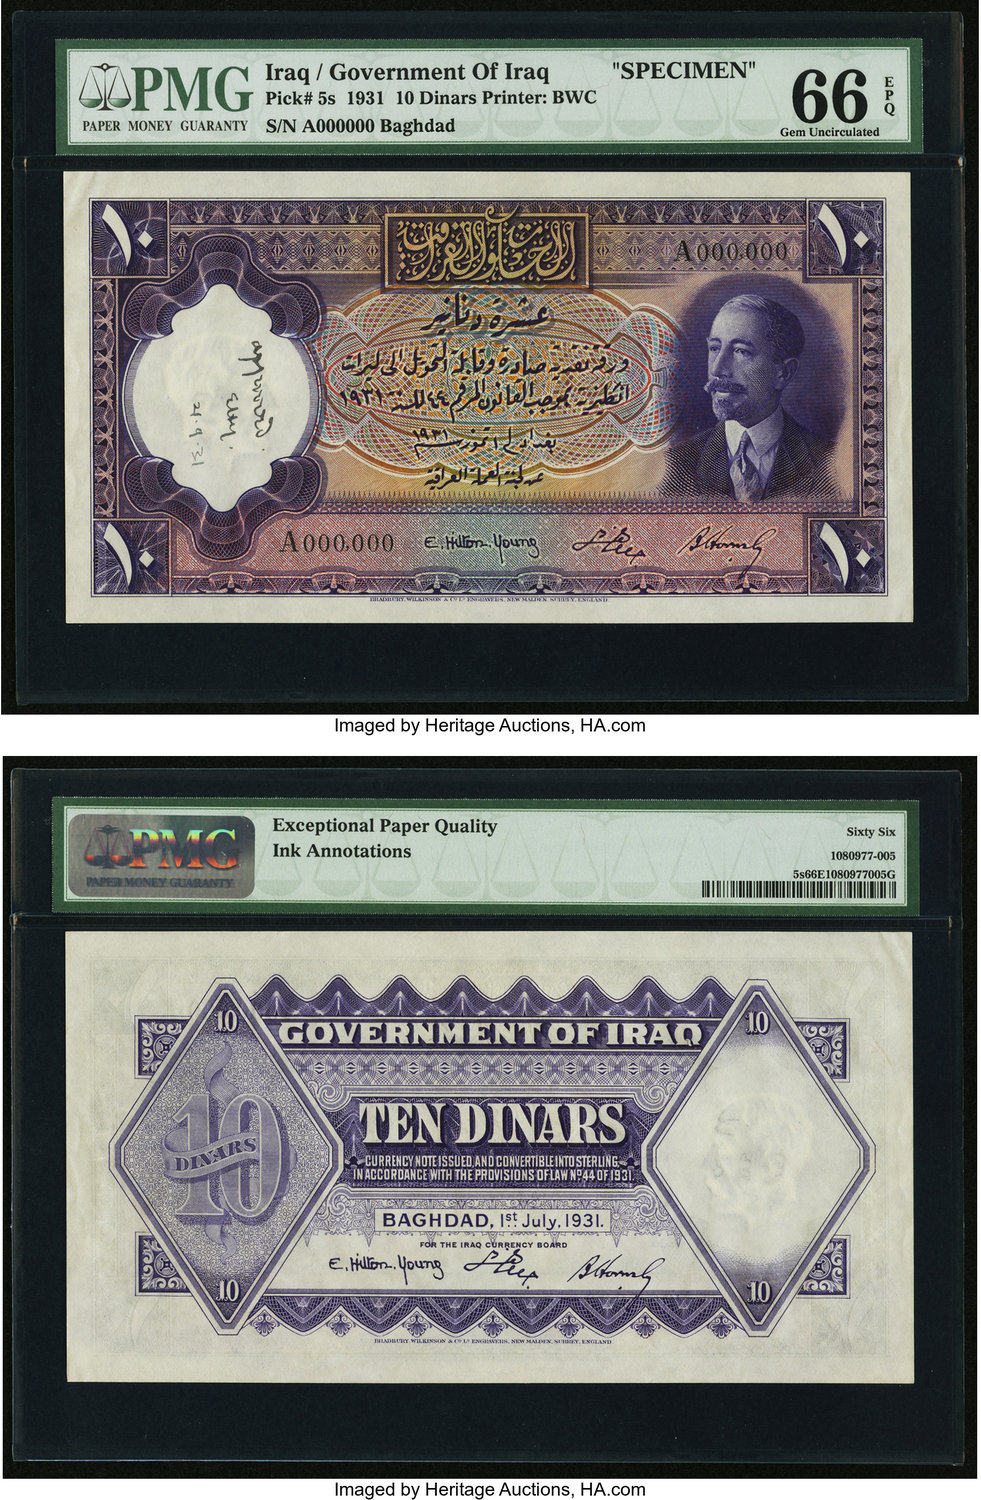 Africa Earnest Egypt 10 Egption Piastres Banknote Serial Number In Photo No 005 Uncirculated